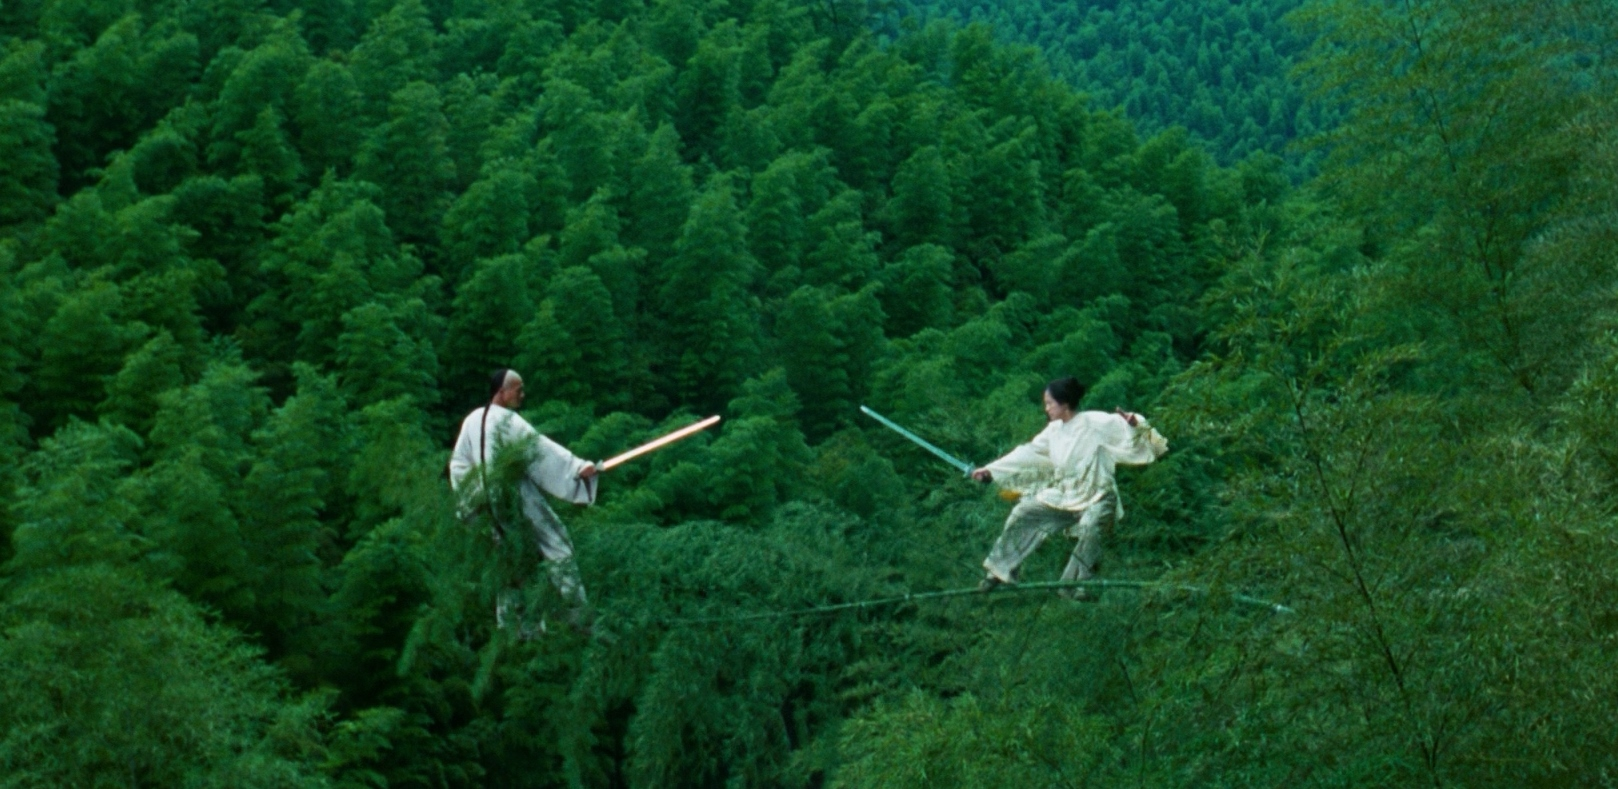 Chow Yun Fat and Zhang Ziyi dueling in the tree tops in Crouching Tiger, Hidden Dragon (2000)